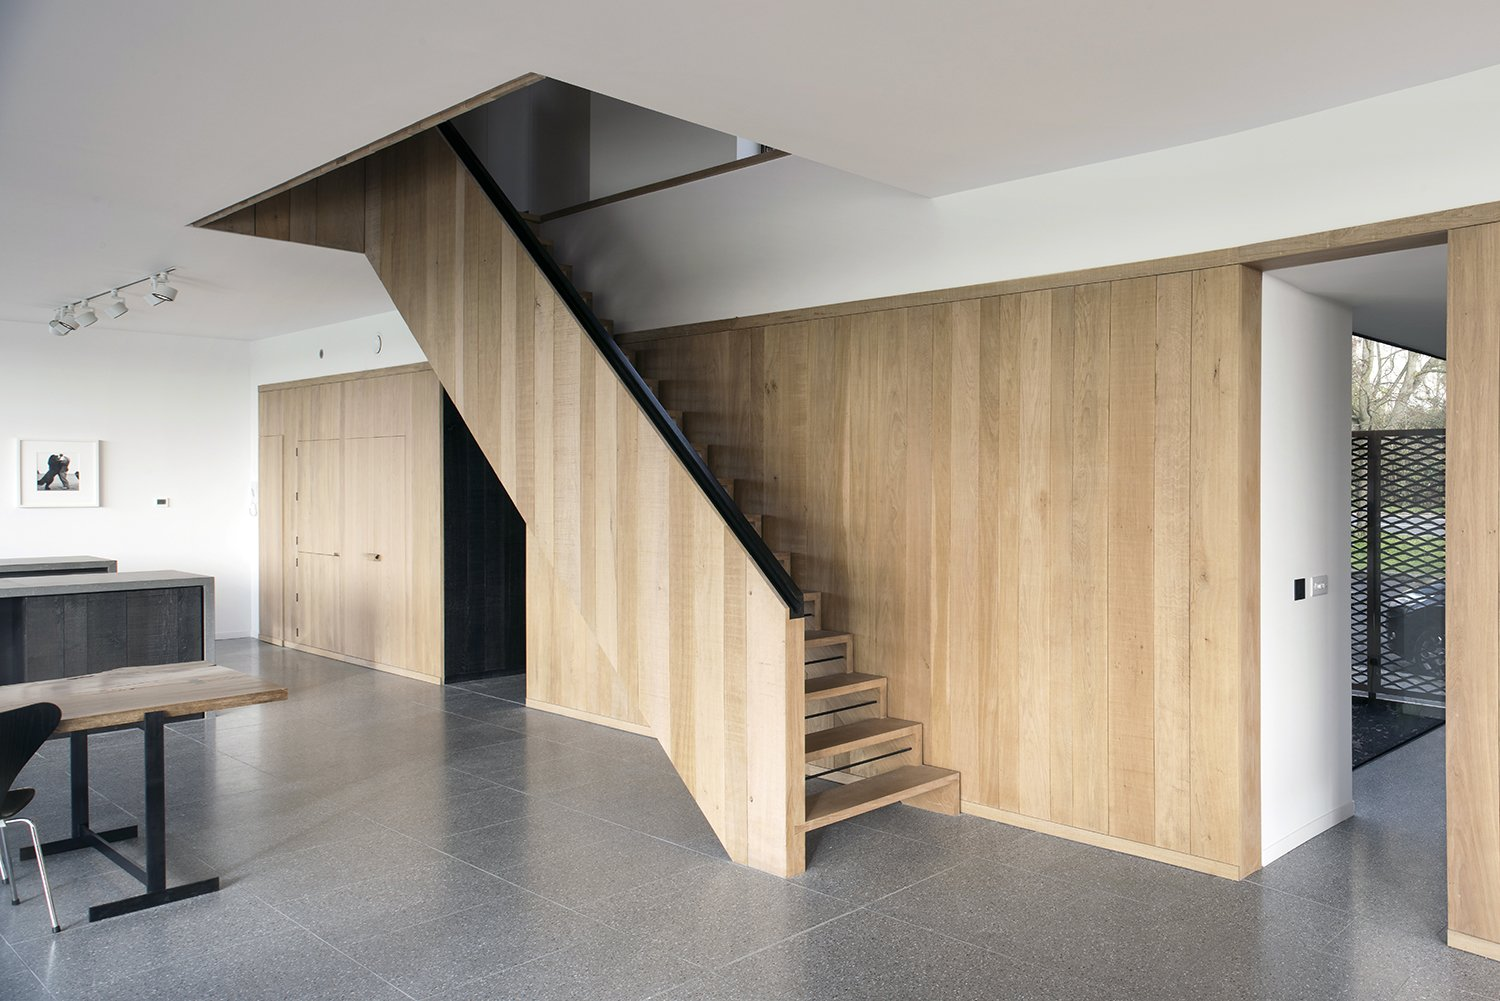 A palette of natural materials is employed in both the interior and exterior. An oak wall and staircase, designed by Jeremy Pitts, join a floor made of gray terrazzo tile.